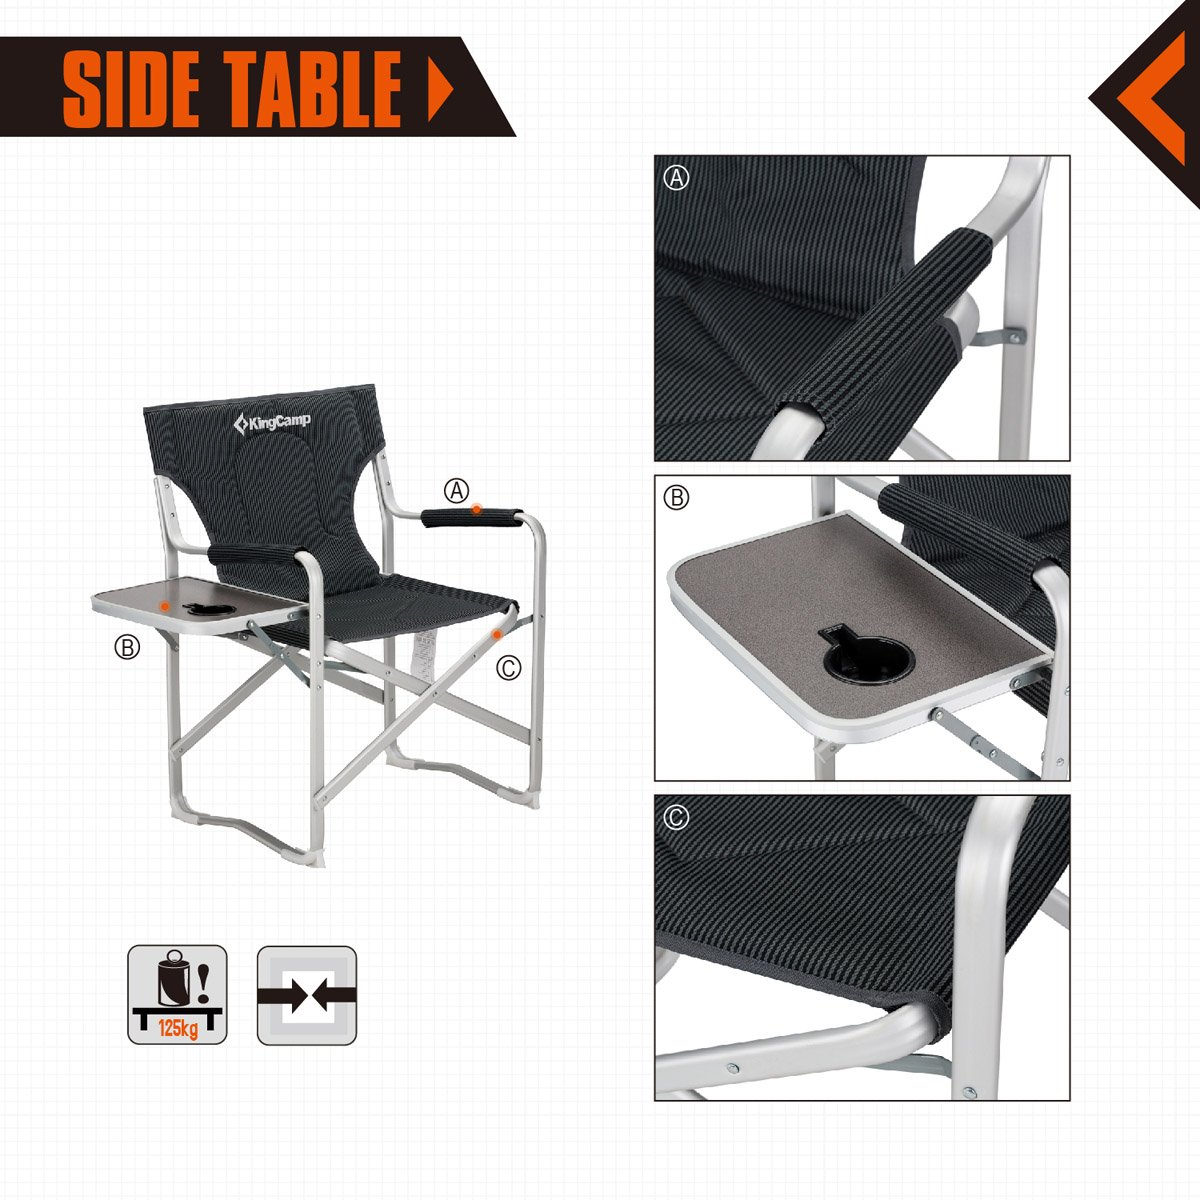 Supports 300lbs KingCamp Director Chair Full Back Folding Aluminum Padded Portable Heavy Duty Comfort Sturdy with Armrest Side Table and Cup Holder for Camping